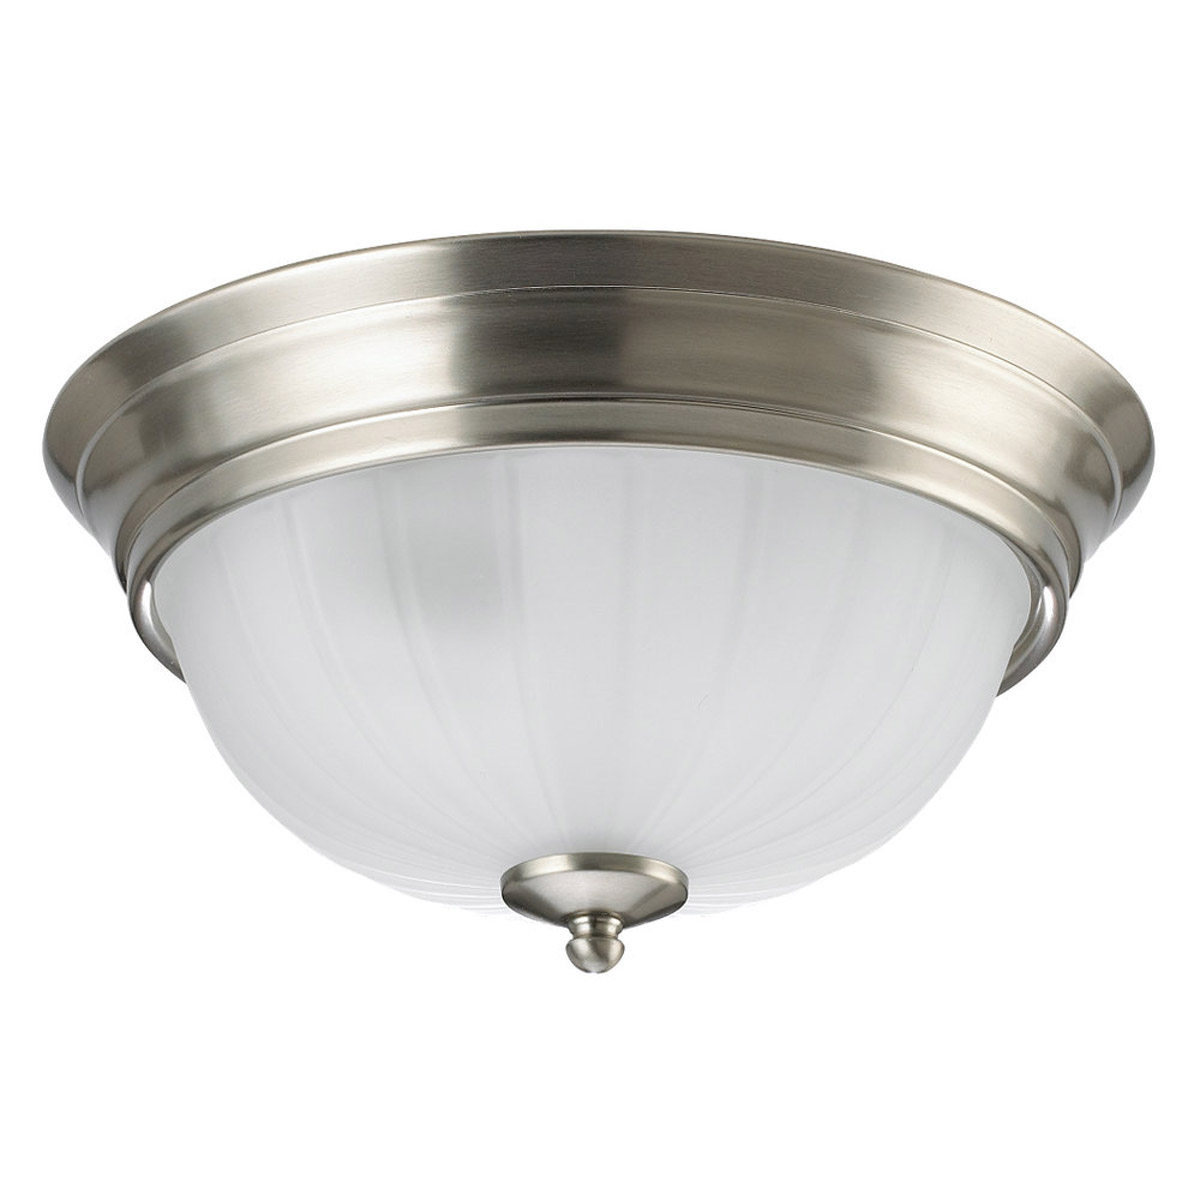 Sea Gull Lighting Linwood 1 Light Flush Mount in Brushed Nickel 7504-962 photo